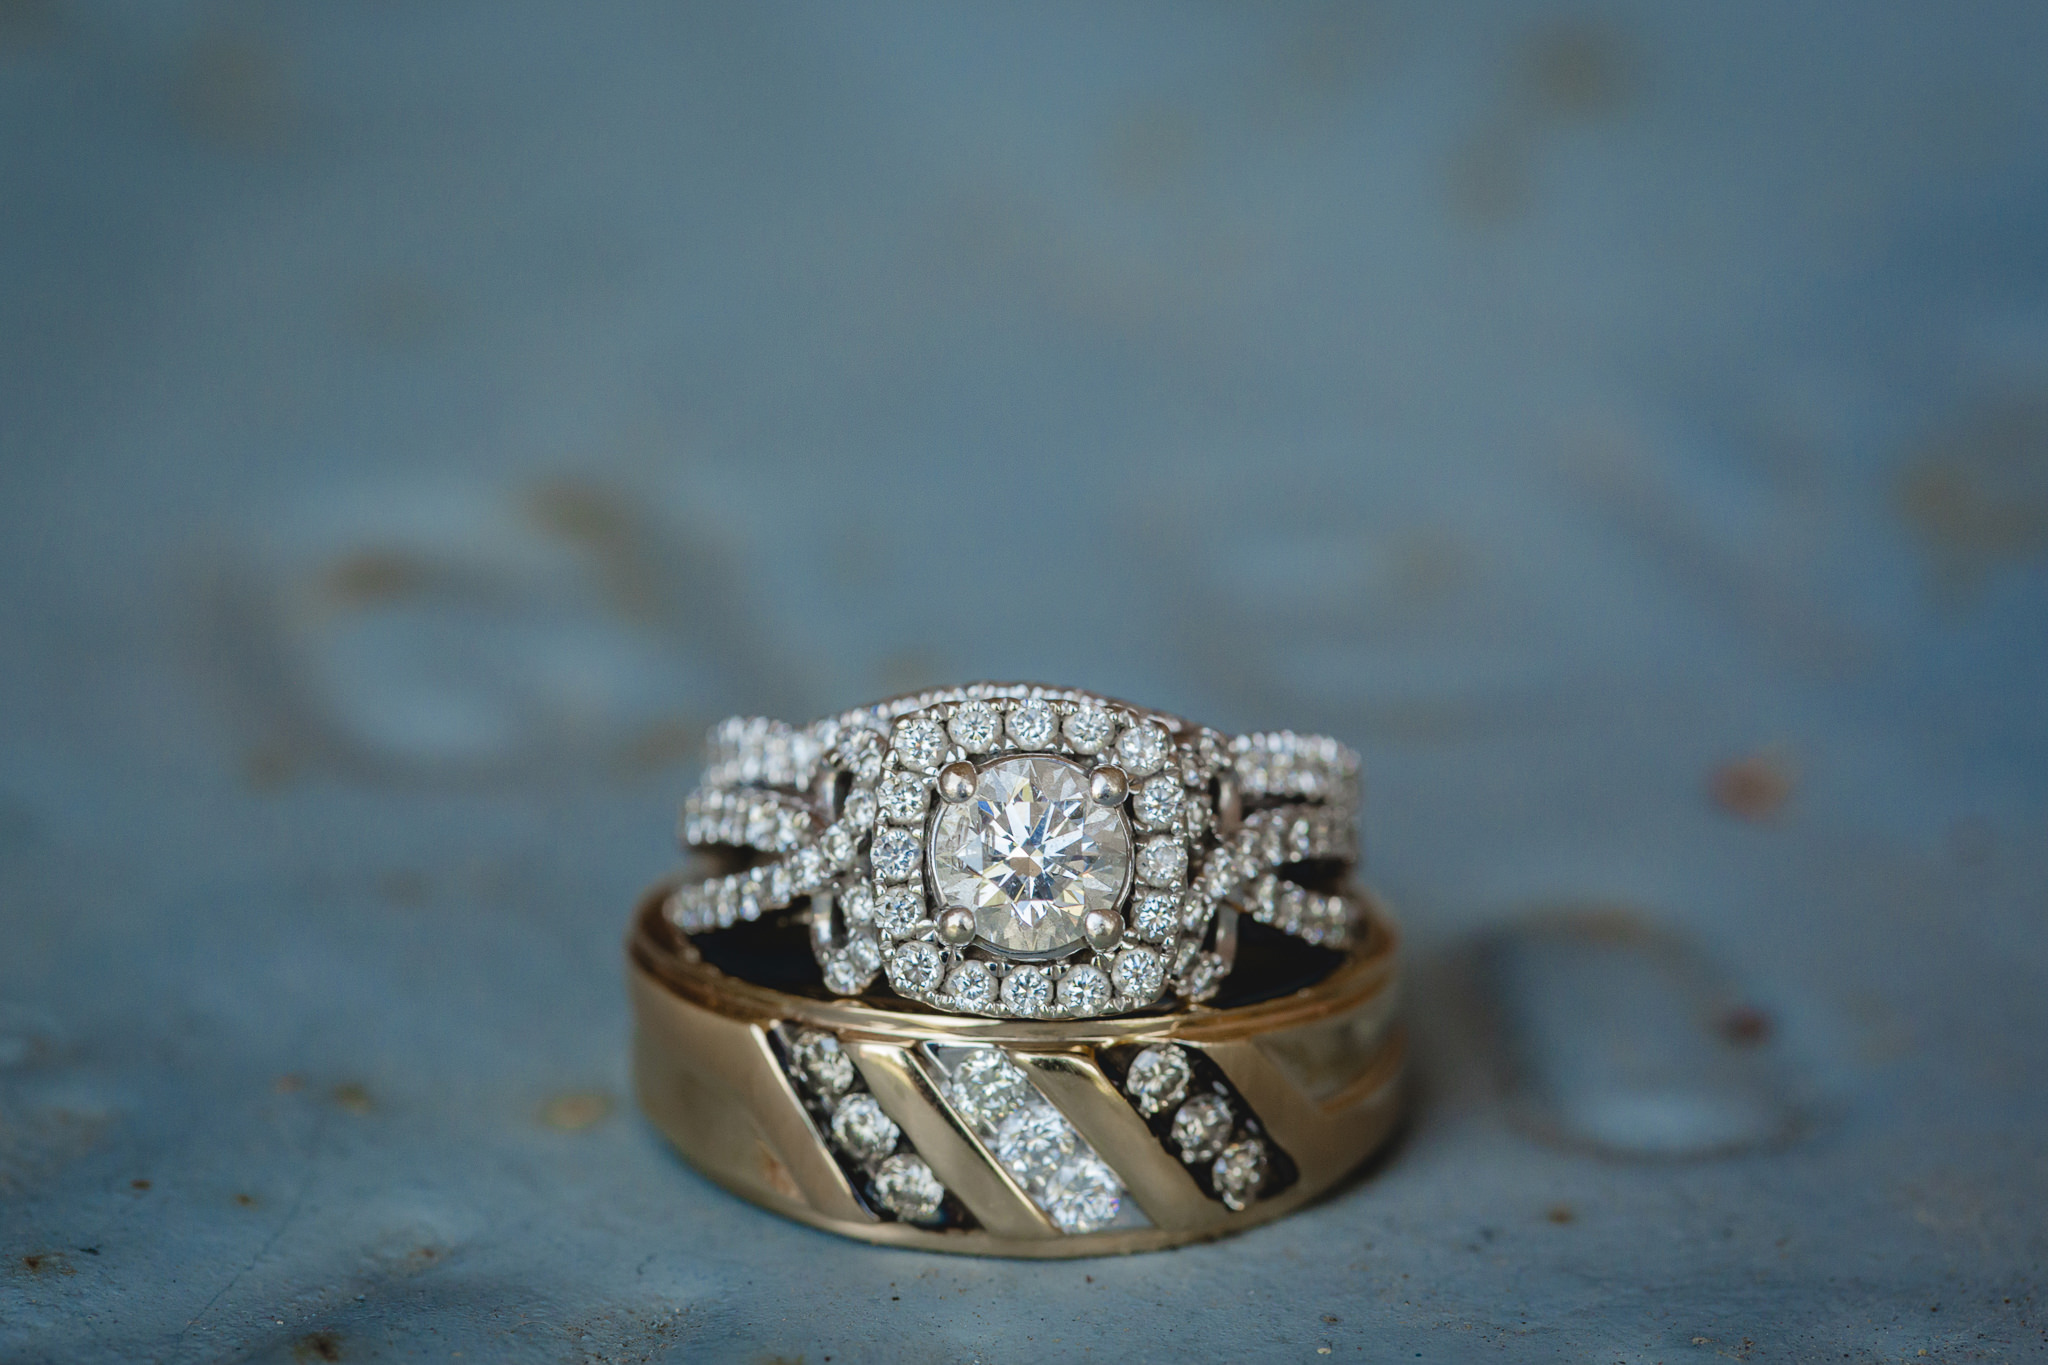 Diamond wedding bands and engagement ring before a wedding at the Fez